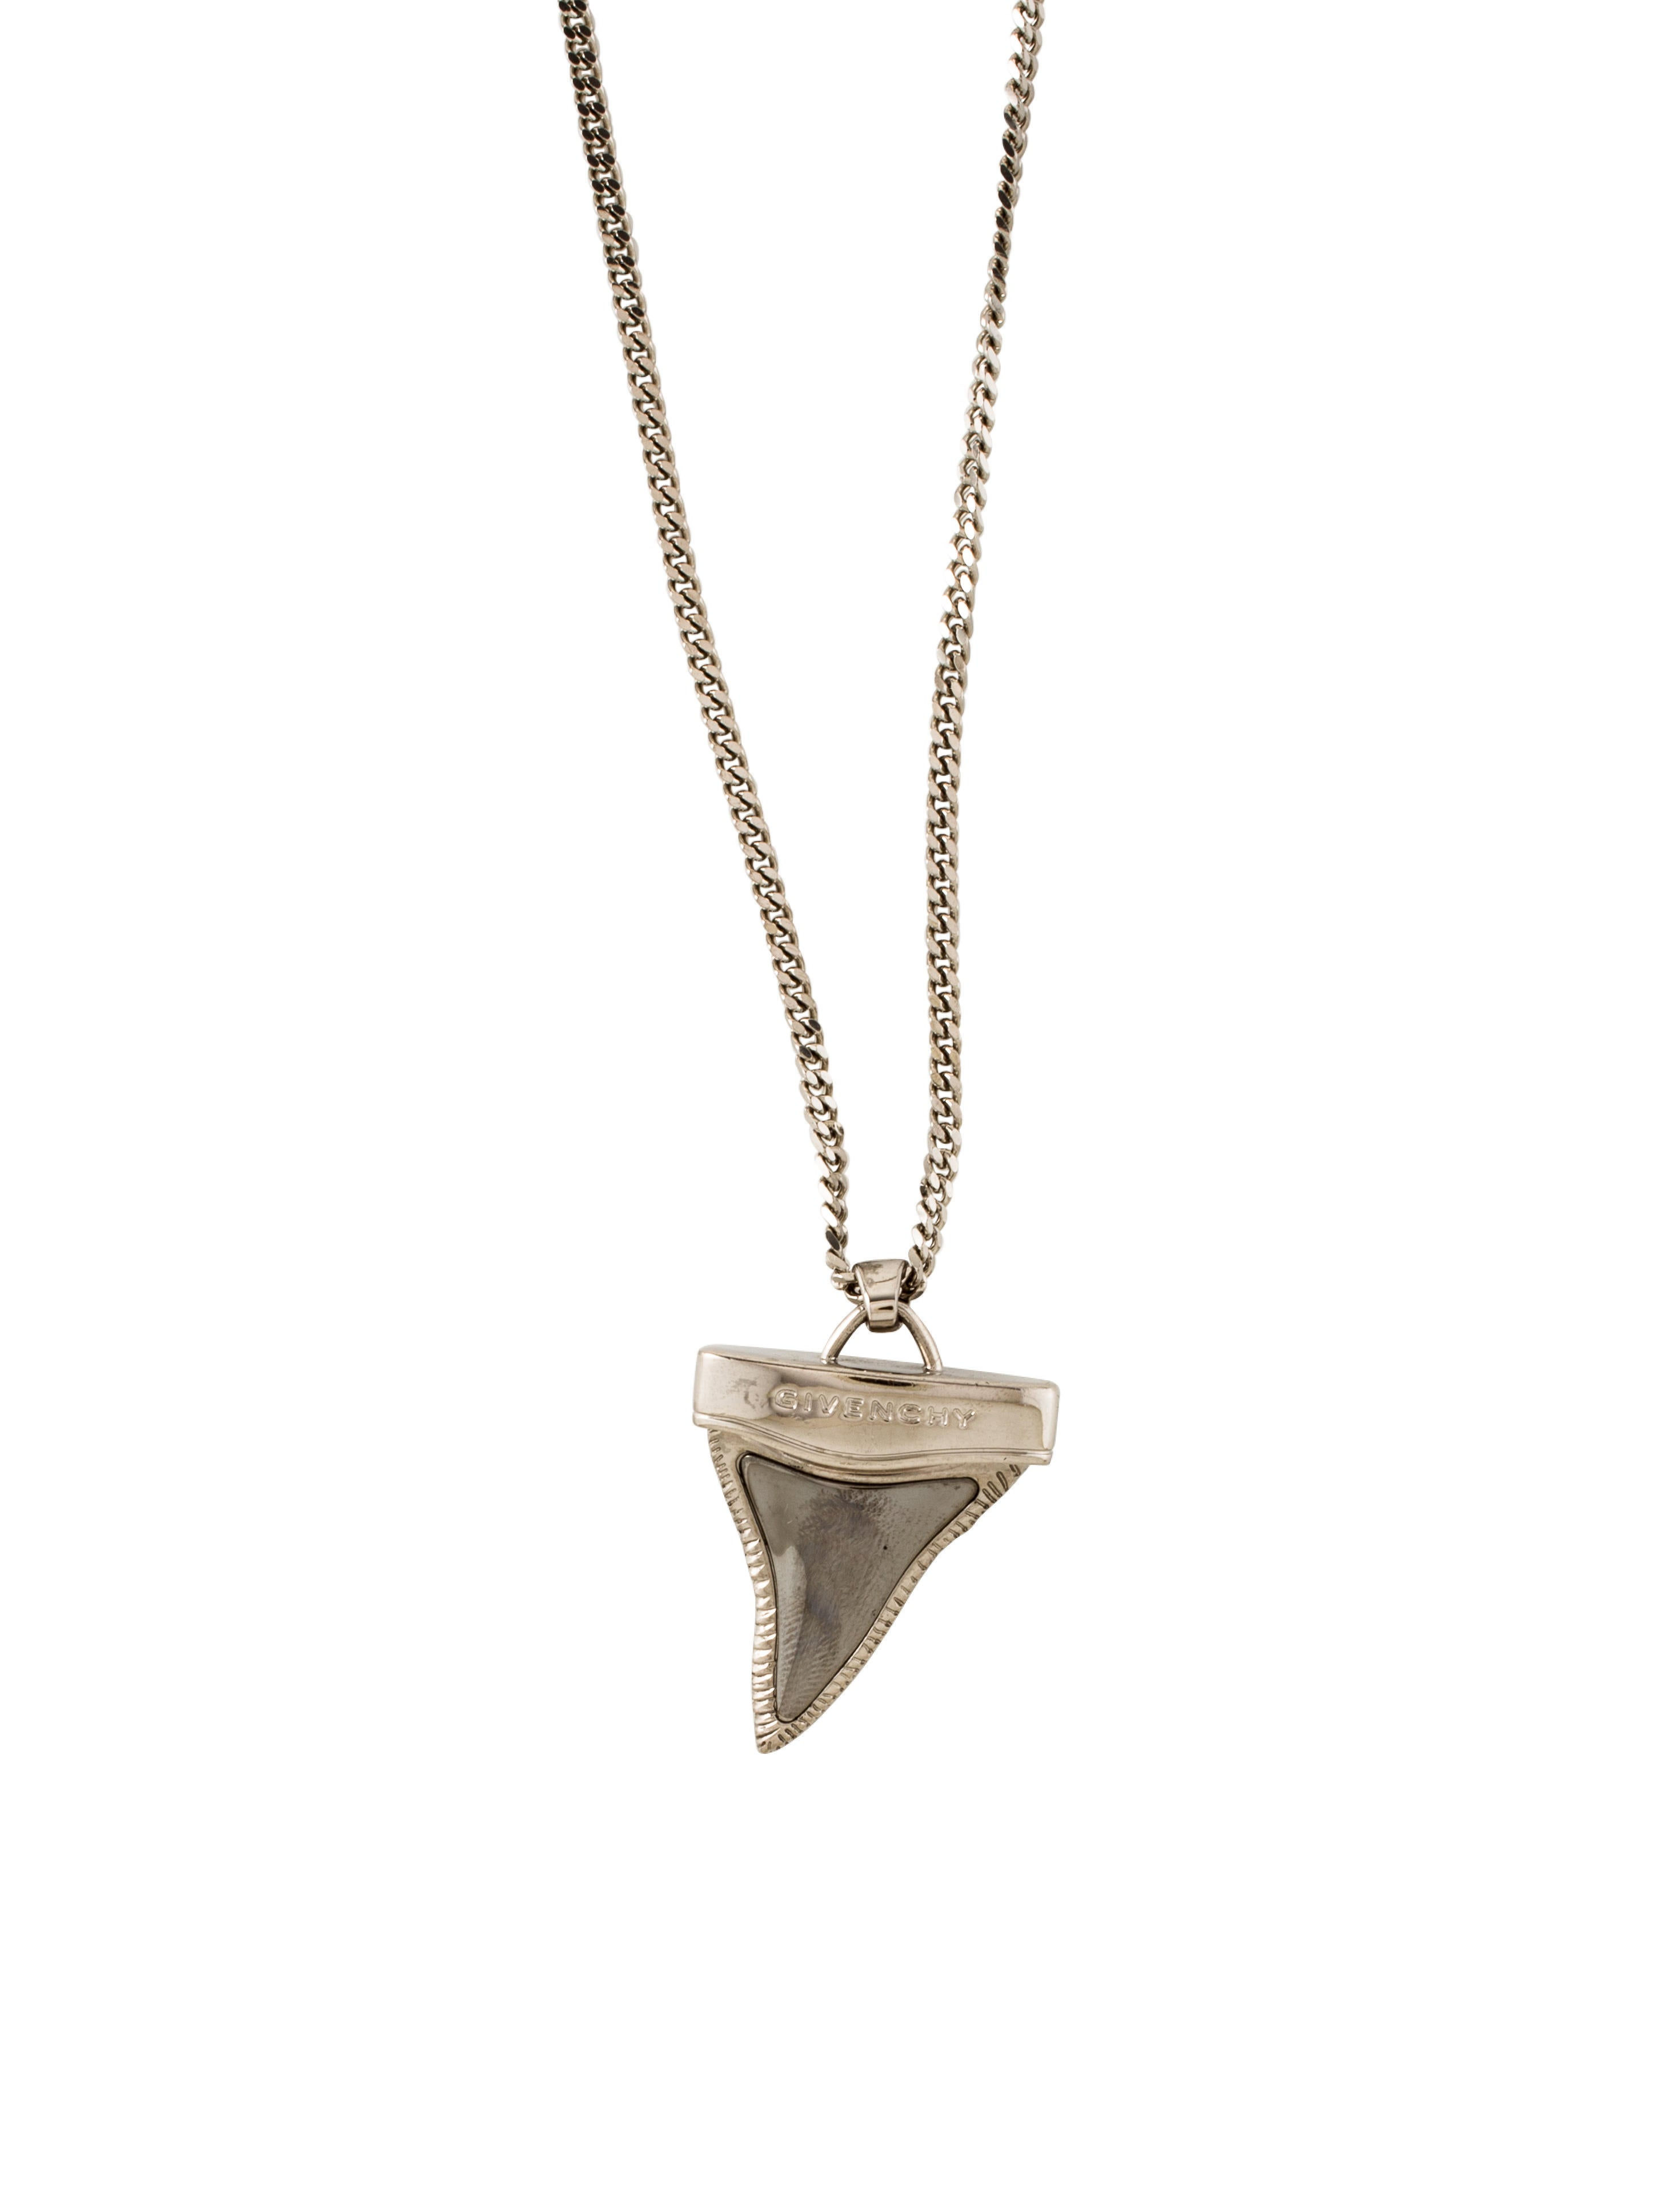 givenchy shark tooth pendant necklace necklaces